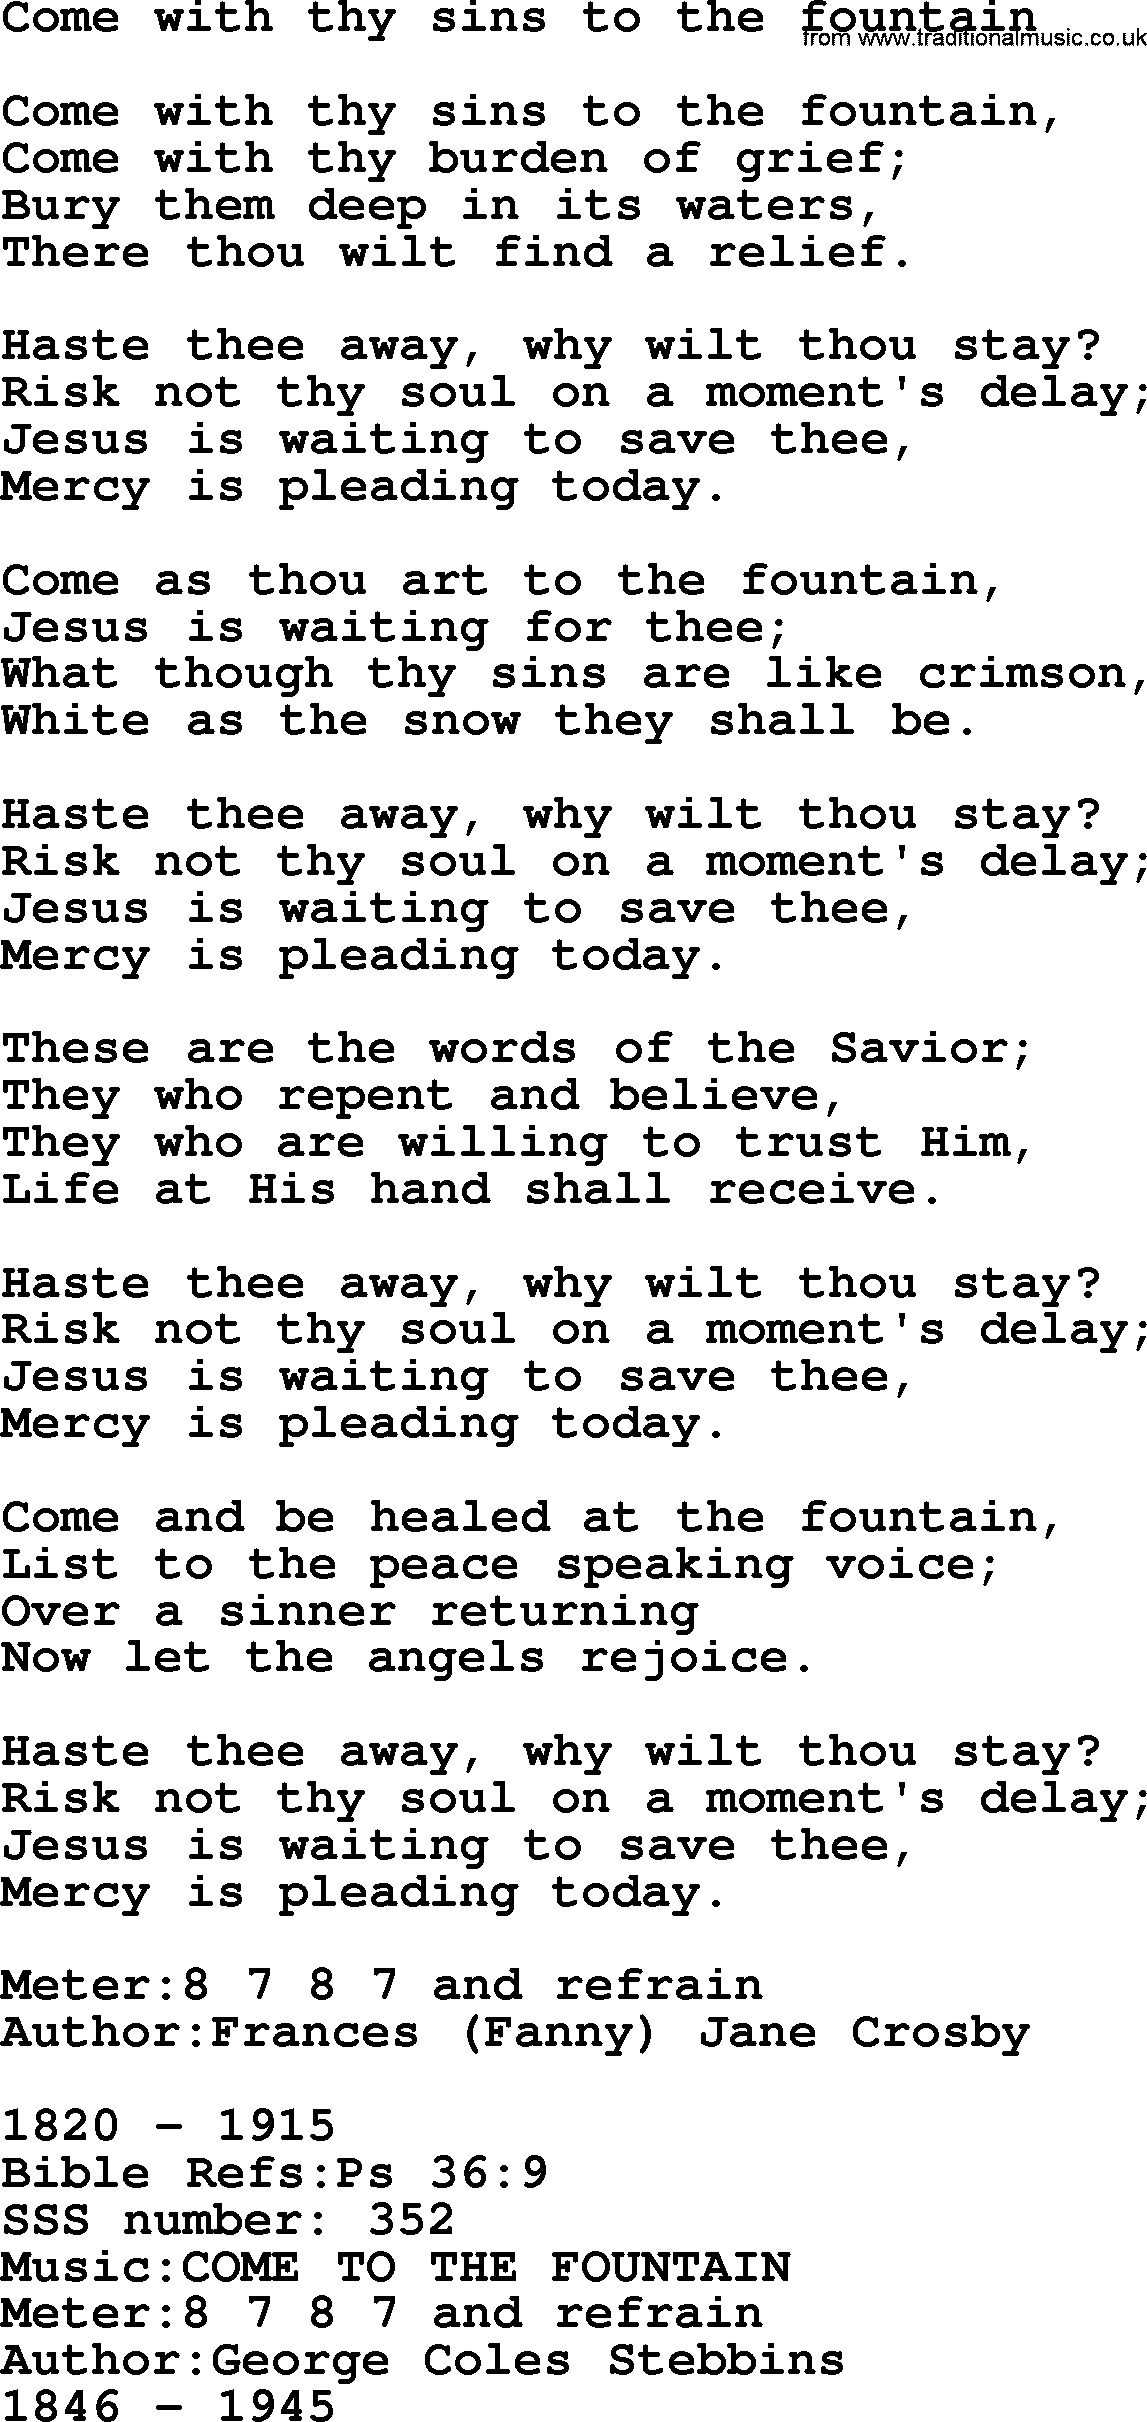 Sacred Songs and Solos complete(words version), Song: Come